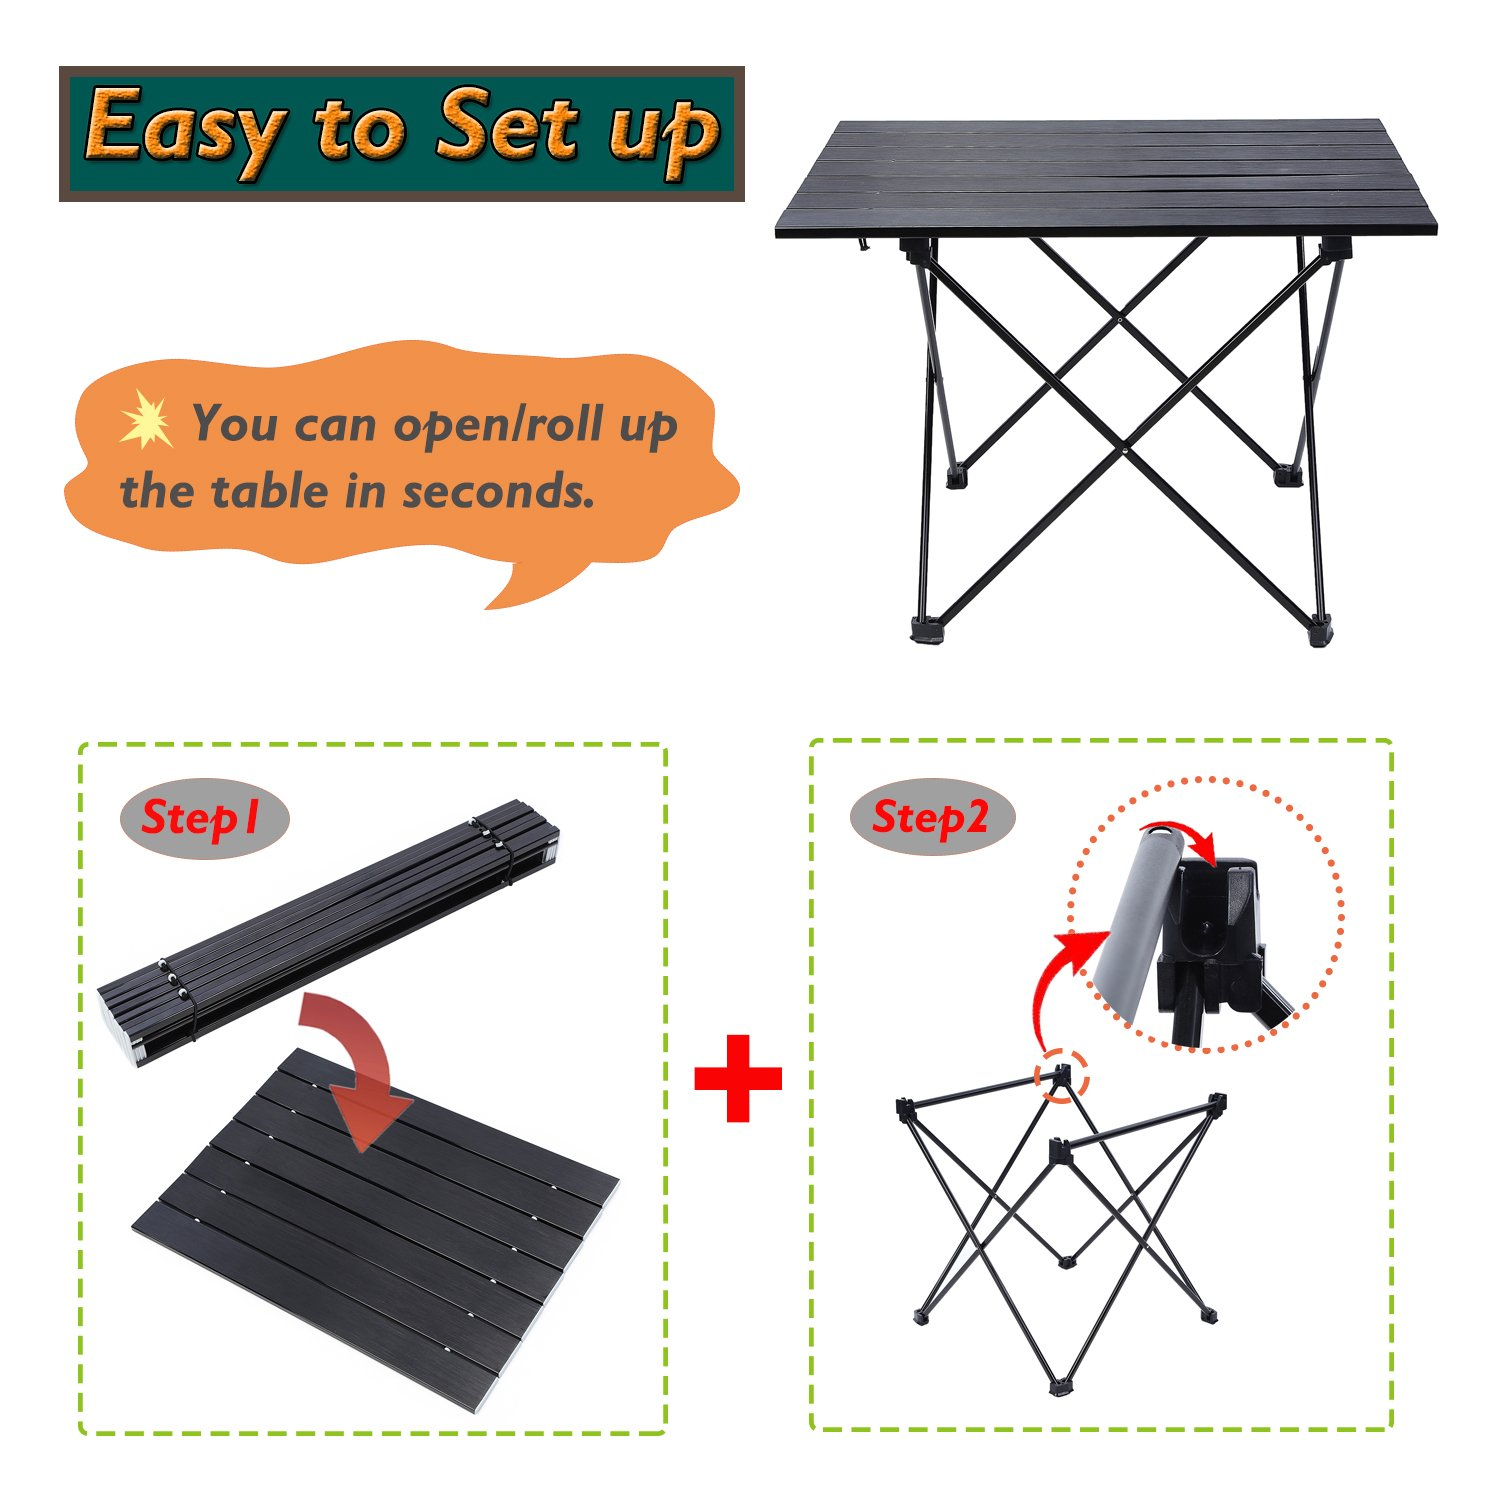 YAHILL Aluminum Folding Collapsible Camping Table Roll up 3 Size with Carrying Bag for Indoor and Outdoor Picnic, BBQ, Beach, Hiking, Travel, Fishing Black-XL